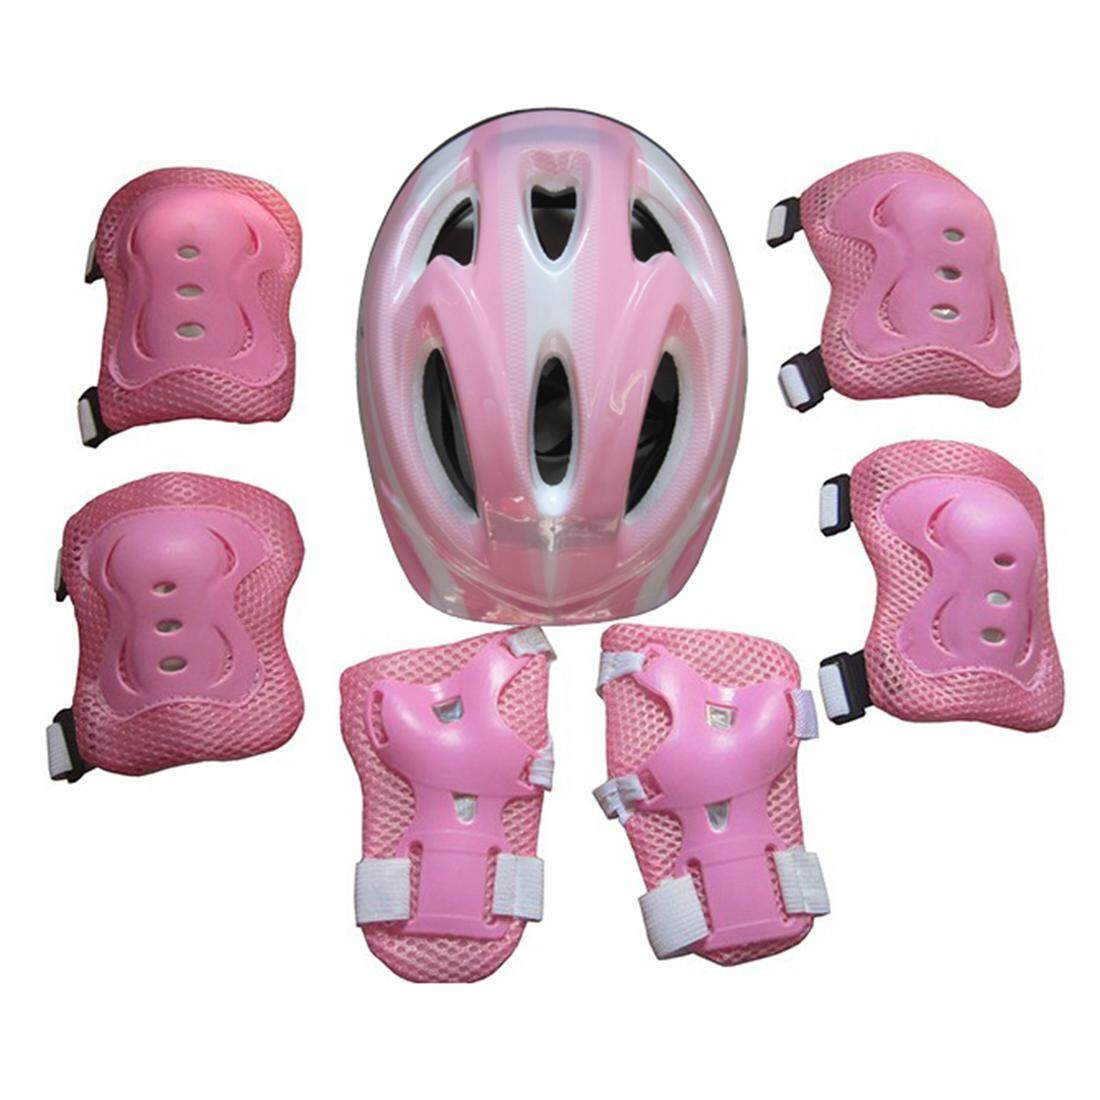 360WISH 7Pcs Ice Skates Protective Gear Helmet Set for 5-11 Year-old Children - Pink